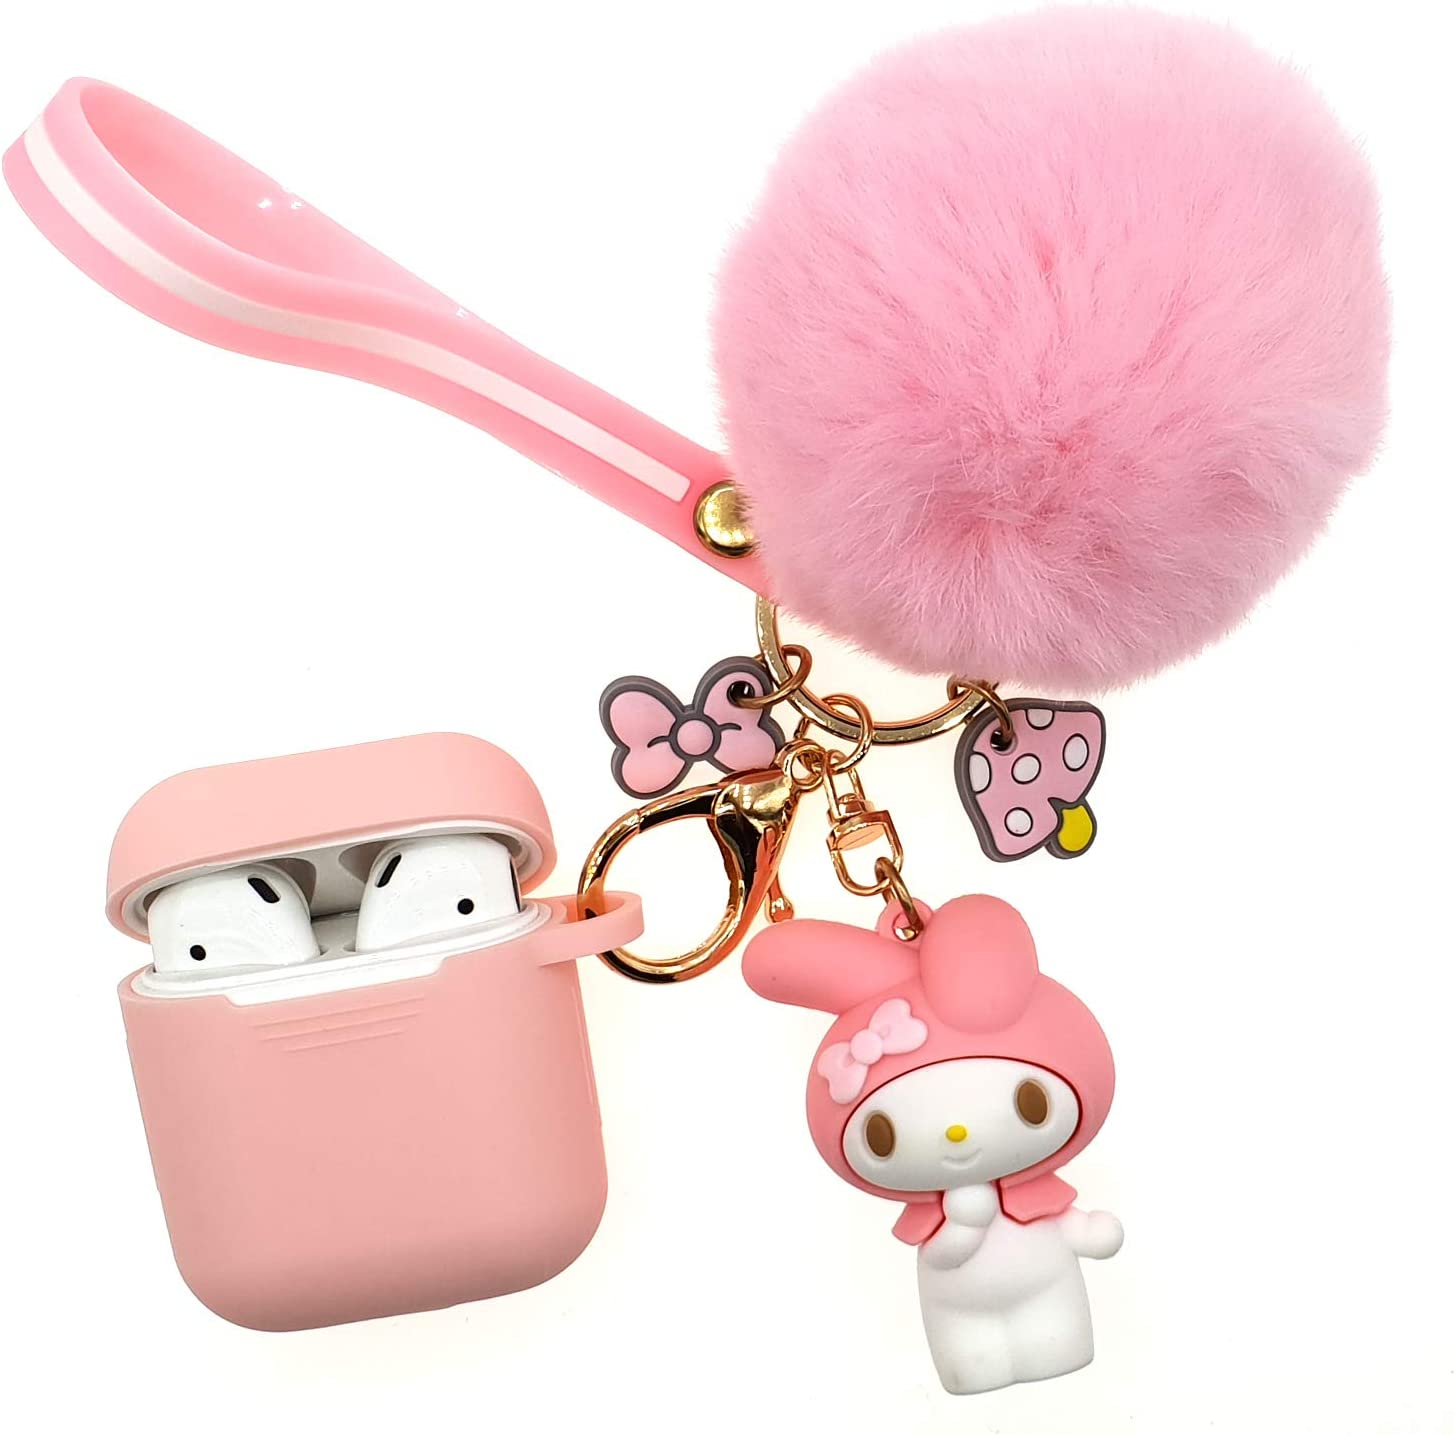 Amazon Com Airpods 2 1 Silicone Case Adorable Replacement For